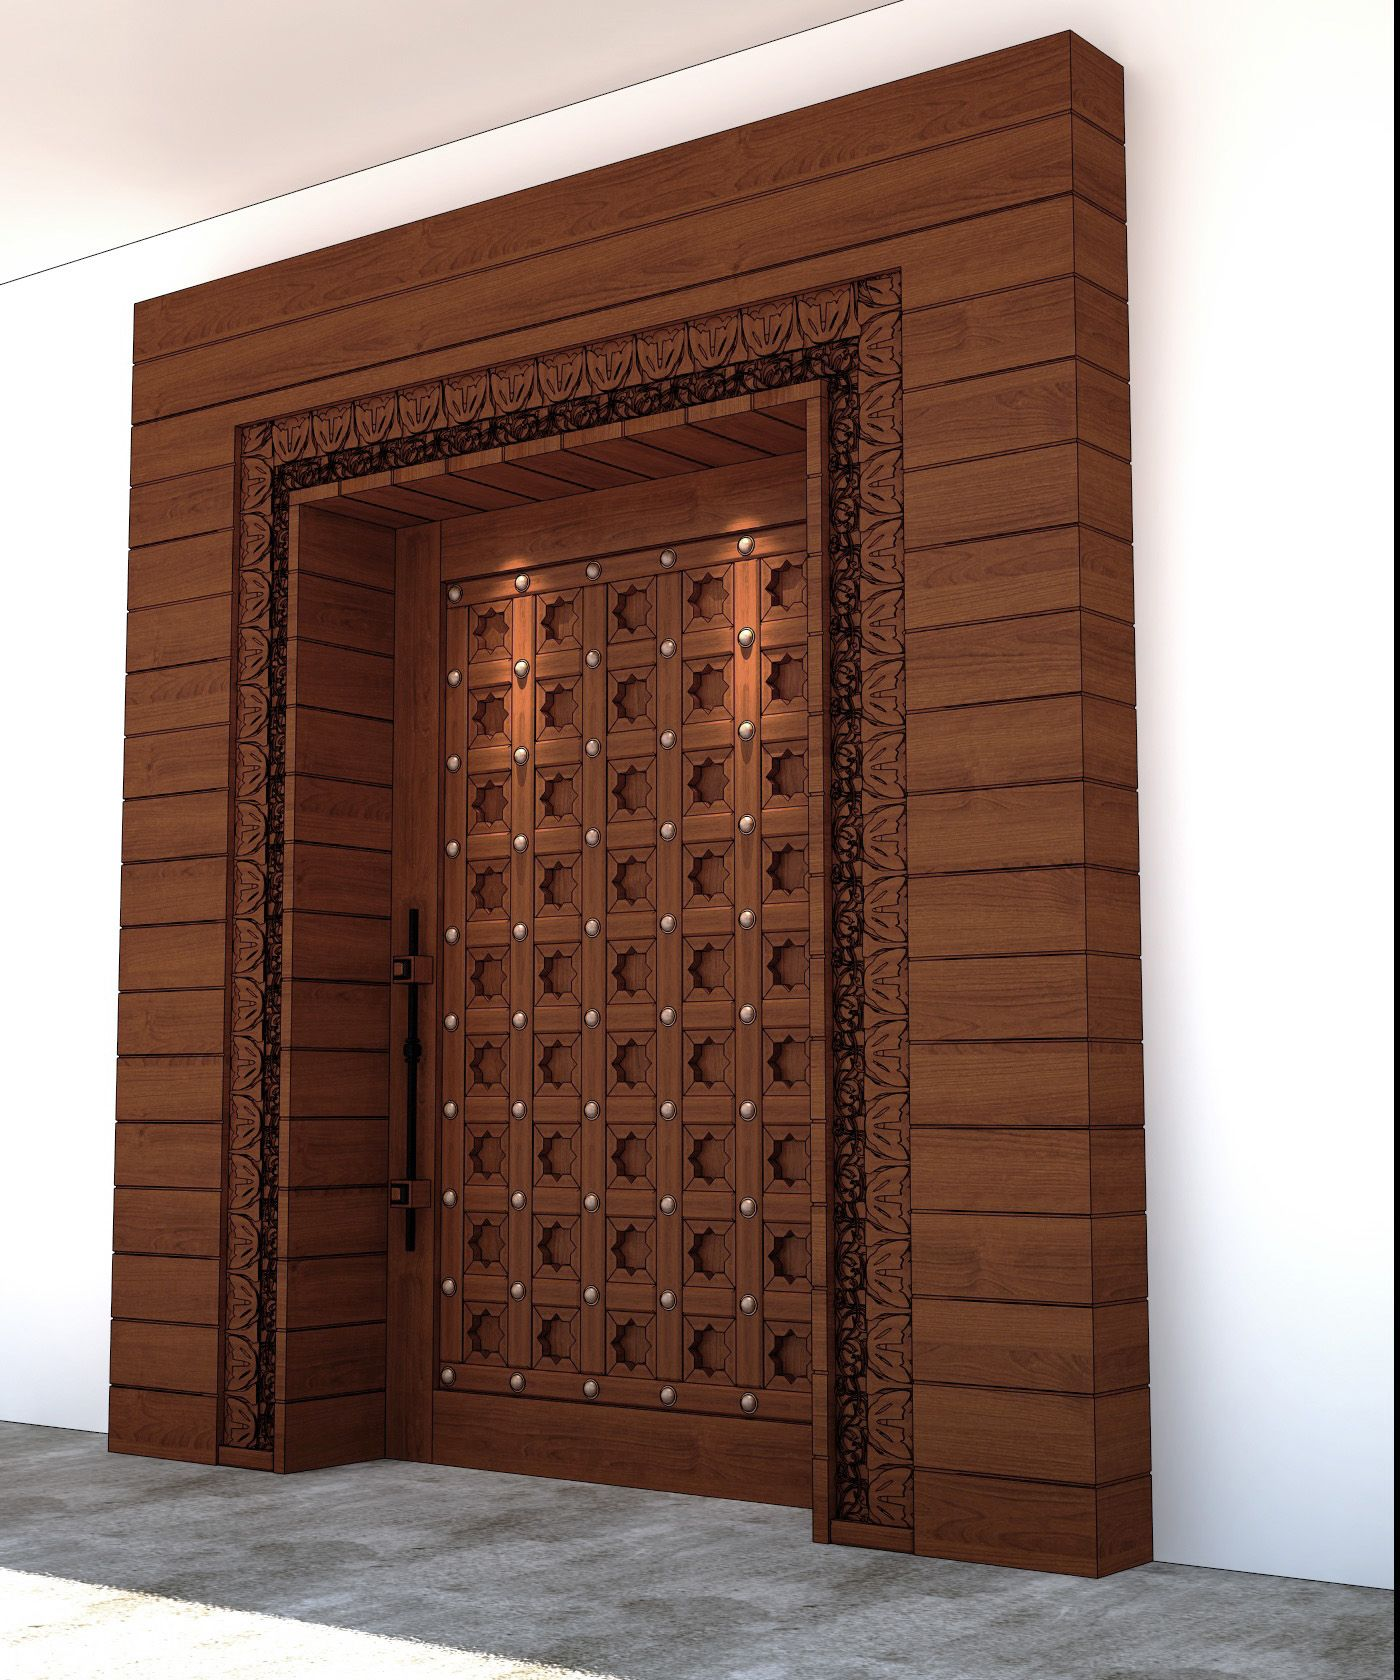 impactful wooden entrance door design